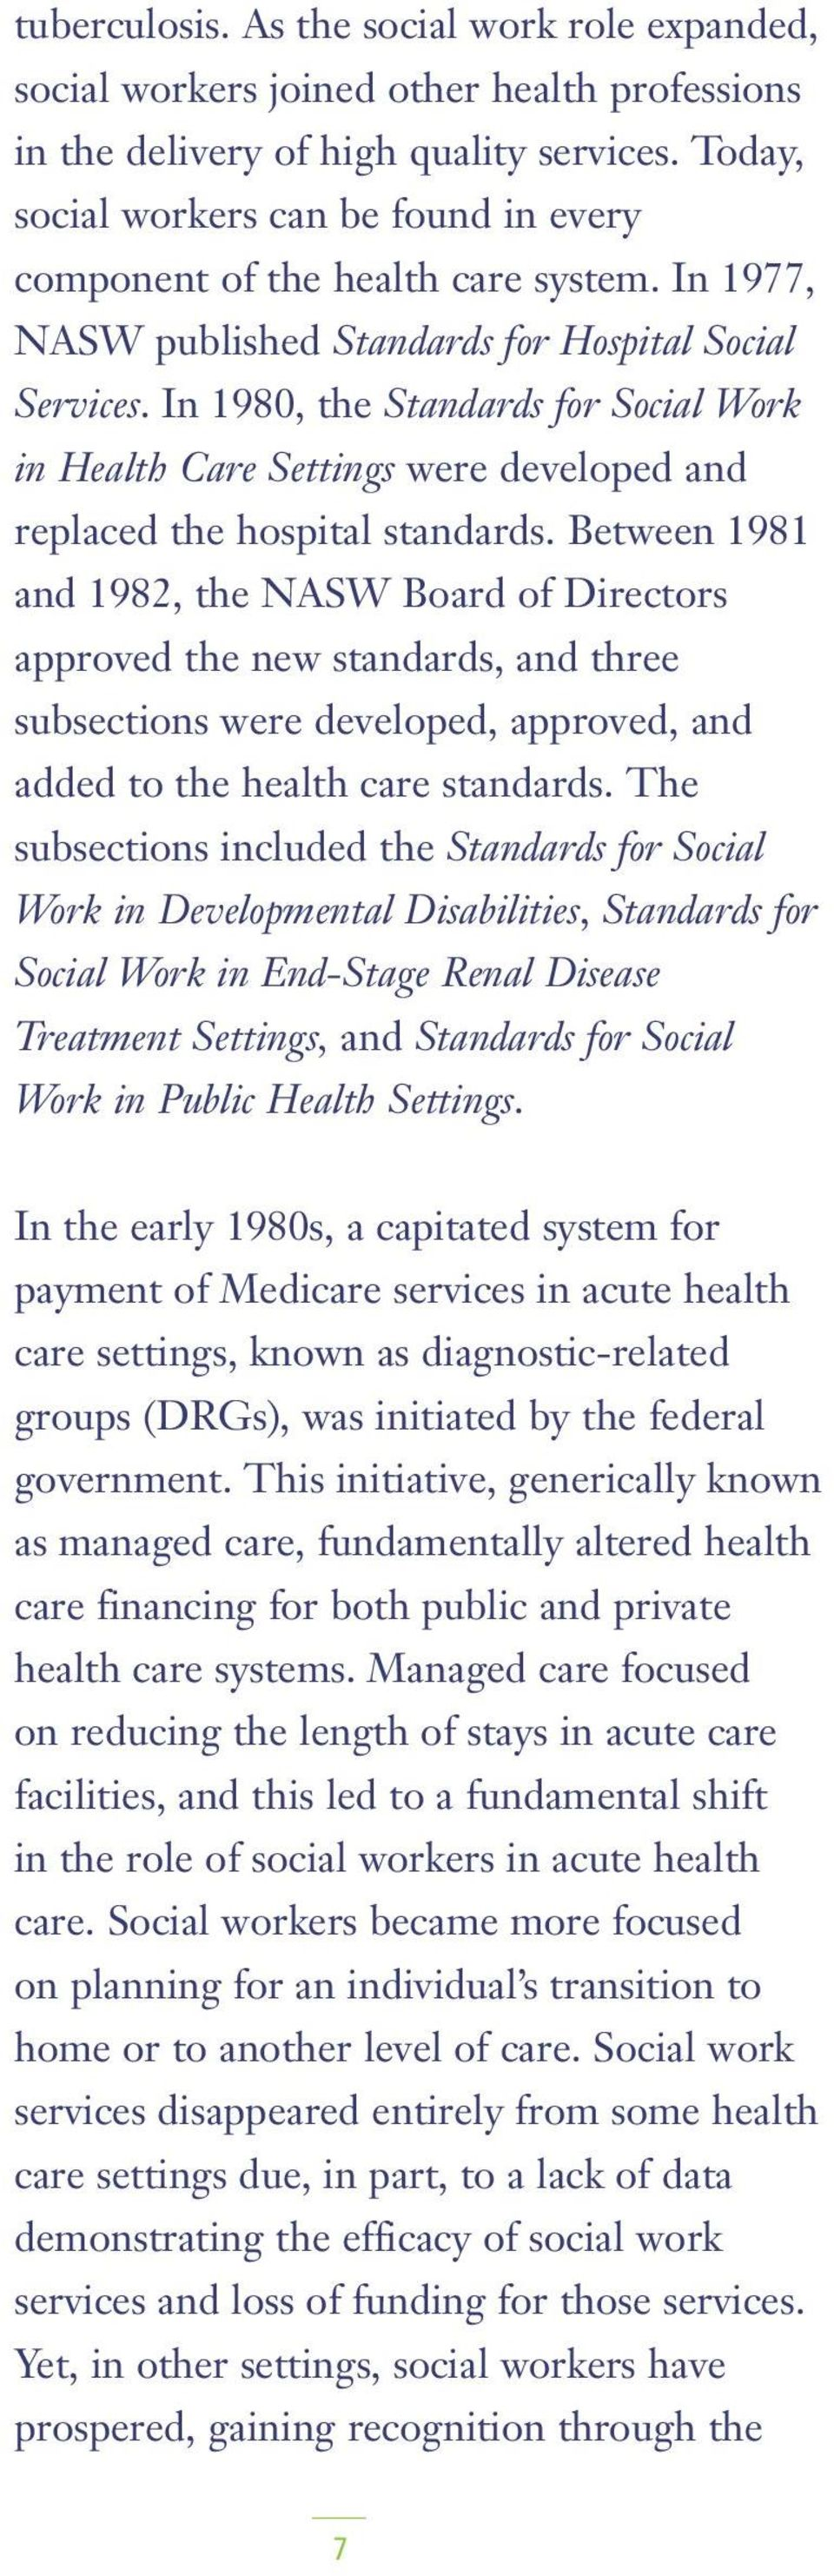 In 1980, the Standards for Social Work in Health Care Settings were developed and replaced the hospital standards.